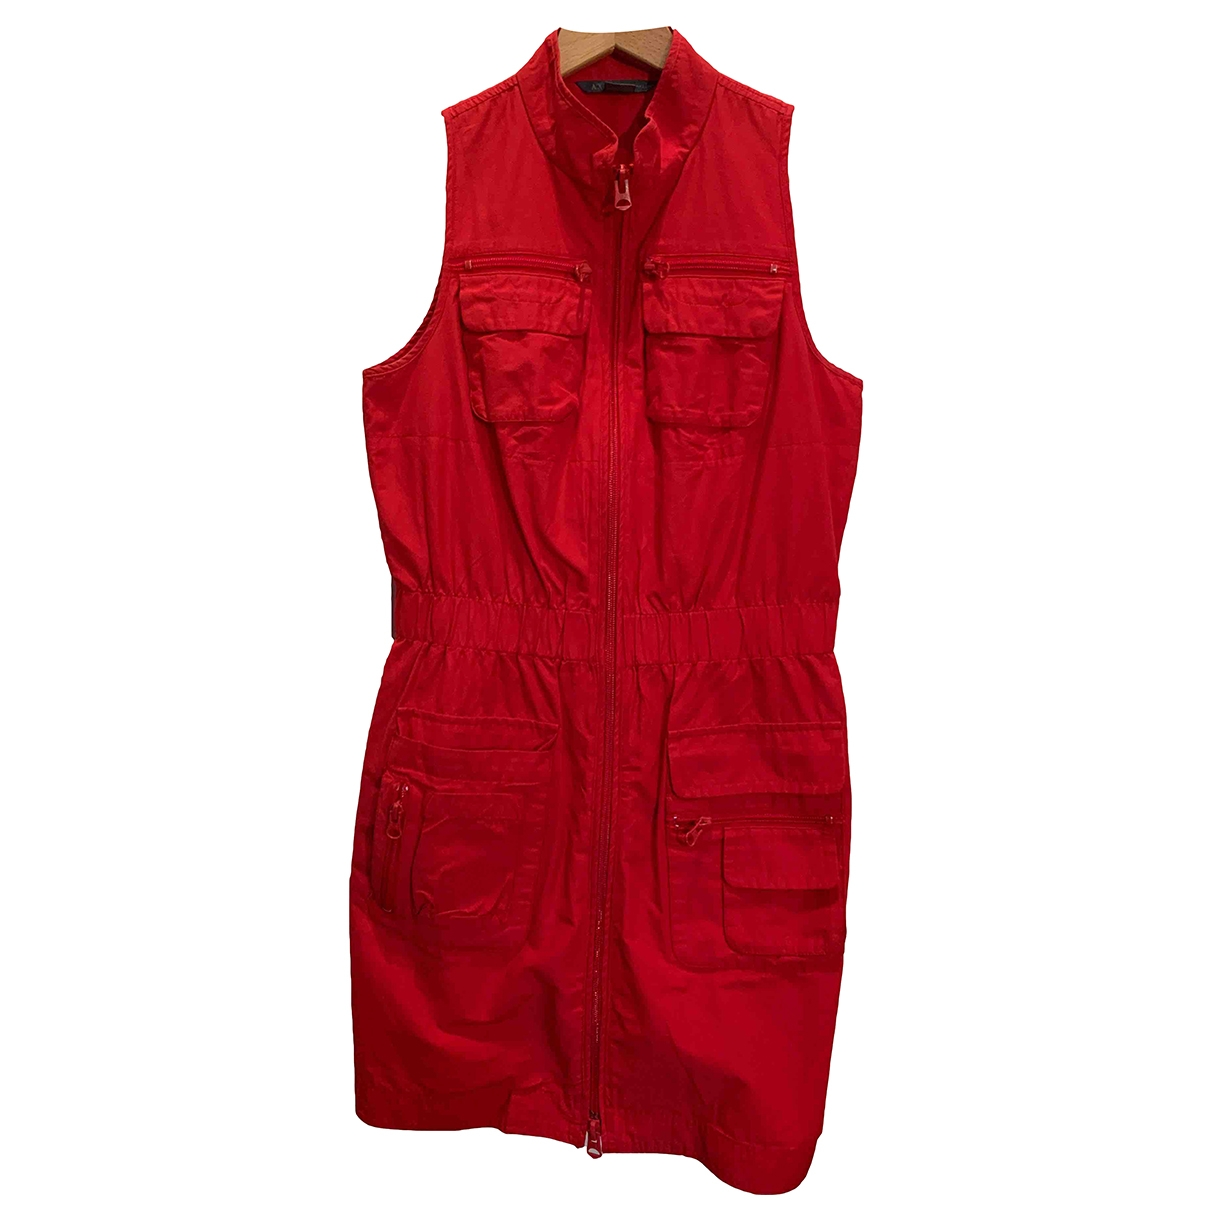 Emporio Armani \N Red dress for Women 4 US